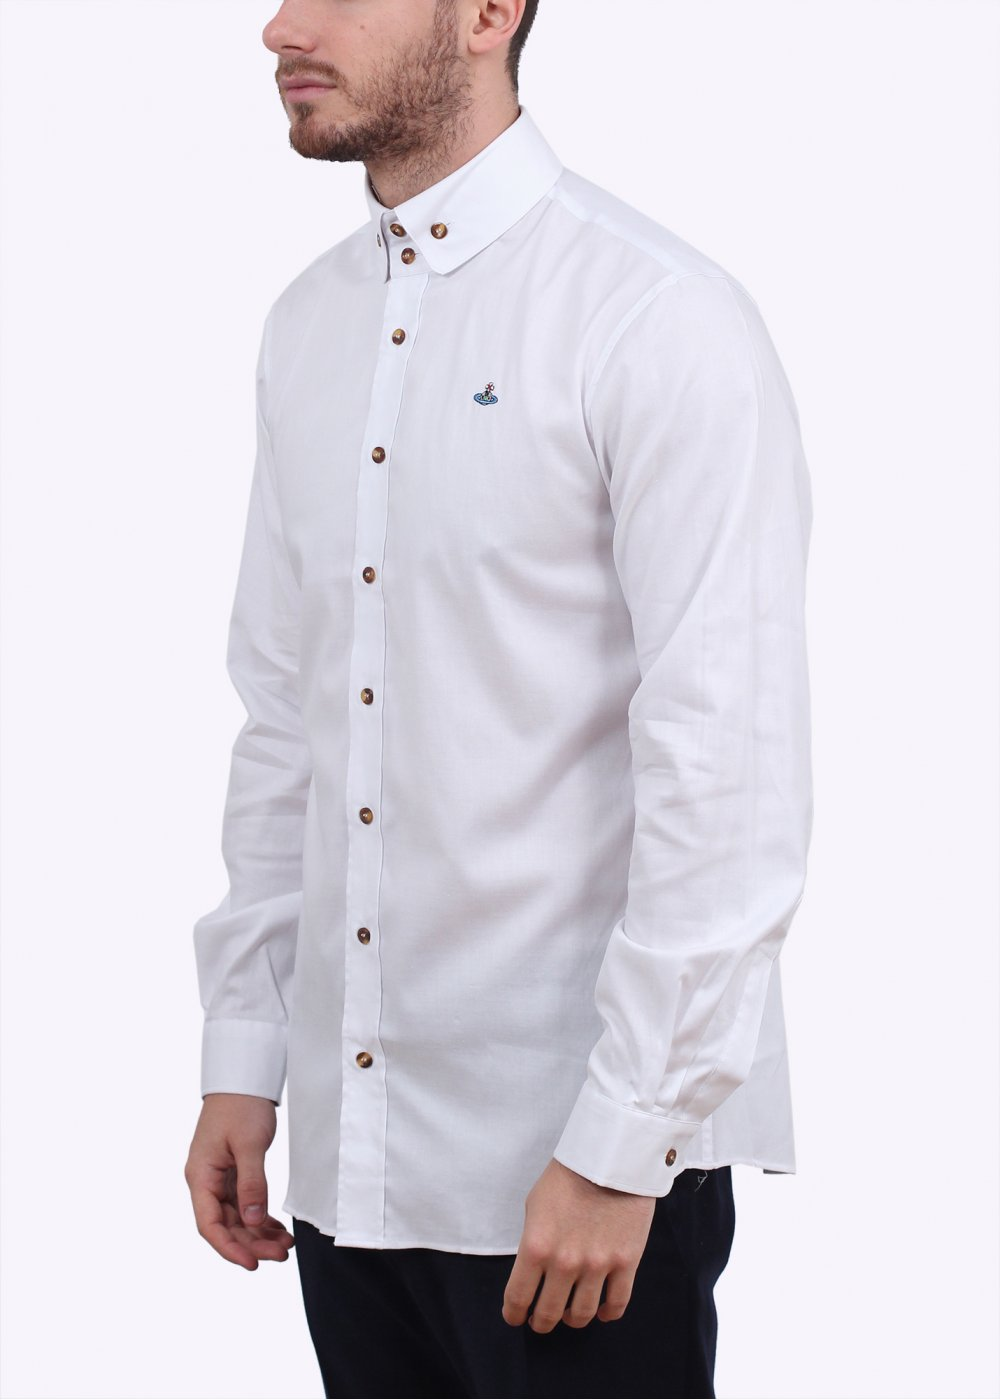 Vivienne westwood 2 button collar shirt white for Mens button collar shirts